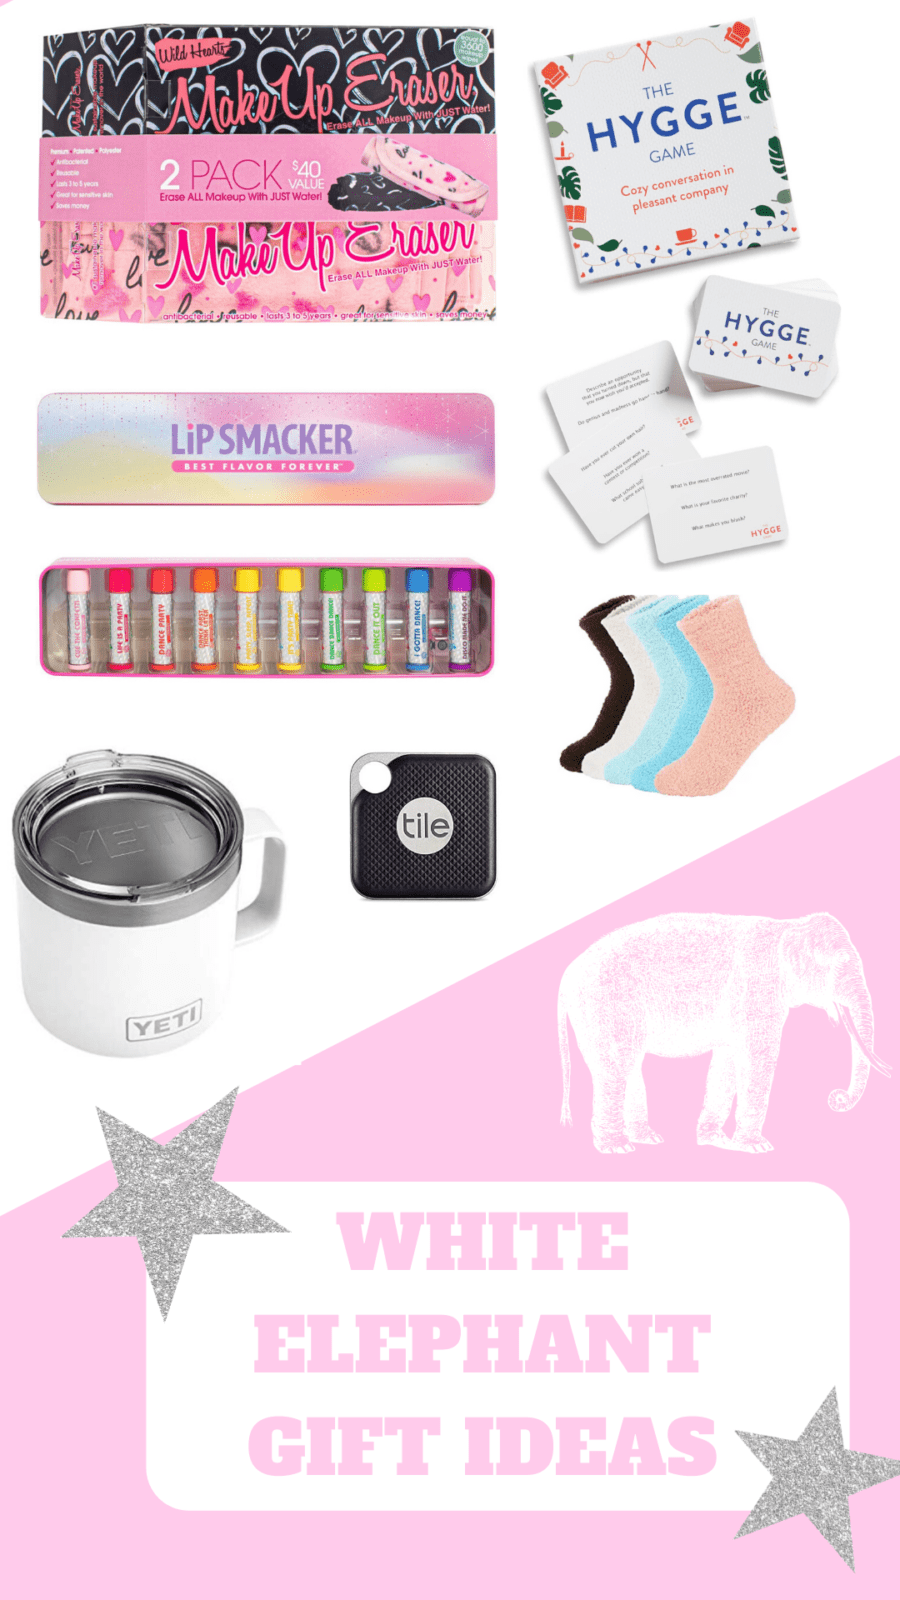 there are various white elephant gift ideas here, including a yeti coffee mug, chapsticks, makeup erasers, fuzzy socks, a tile device, and card games.